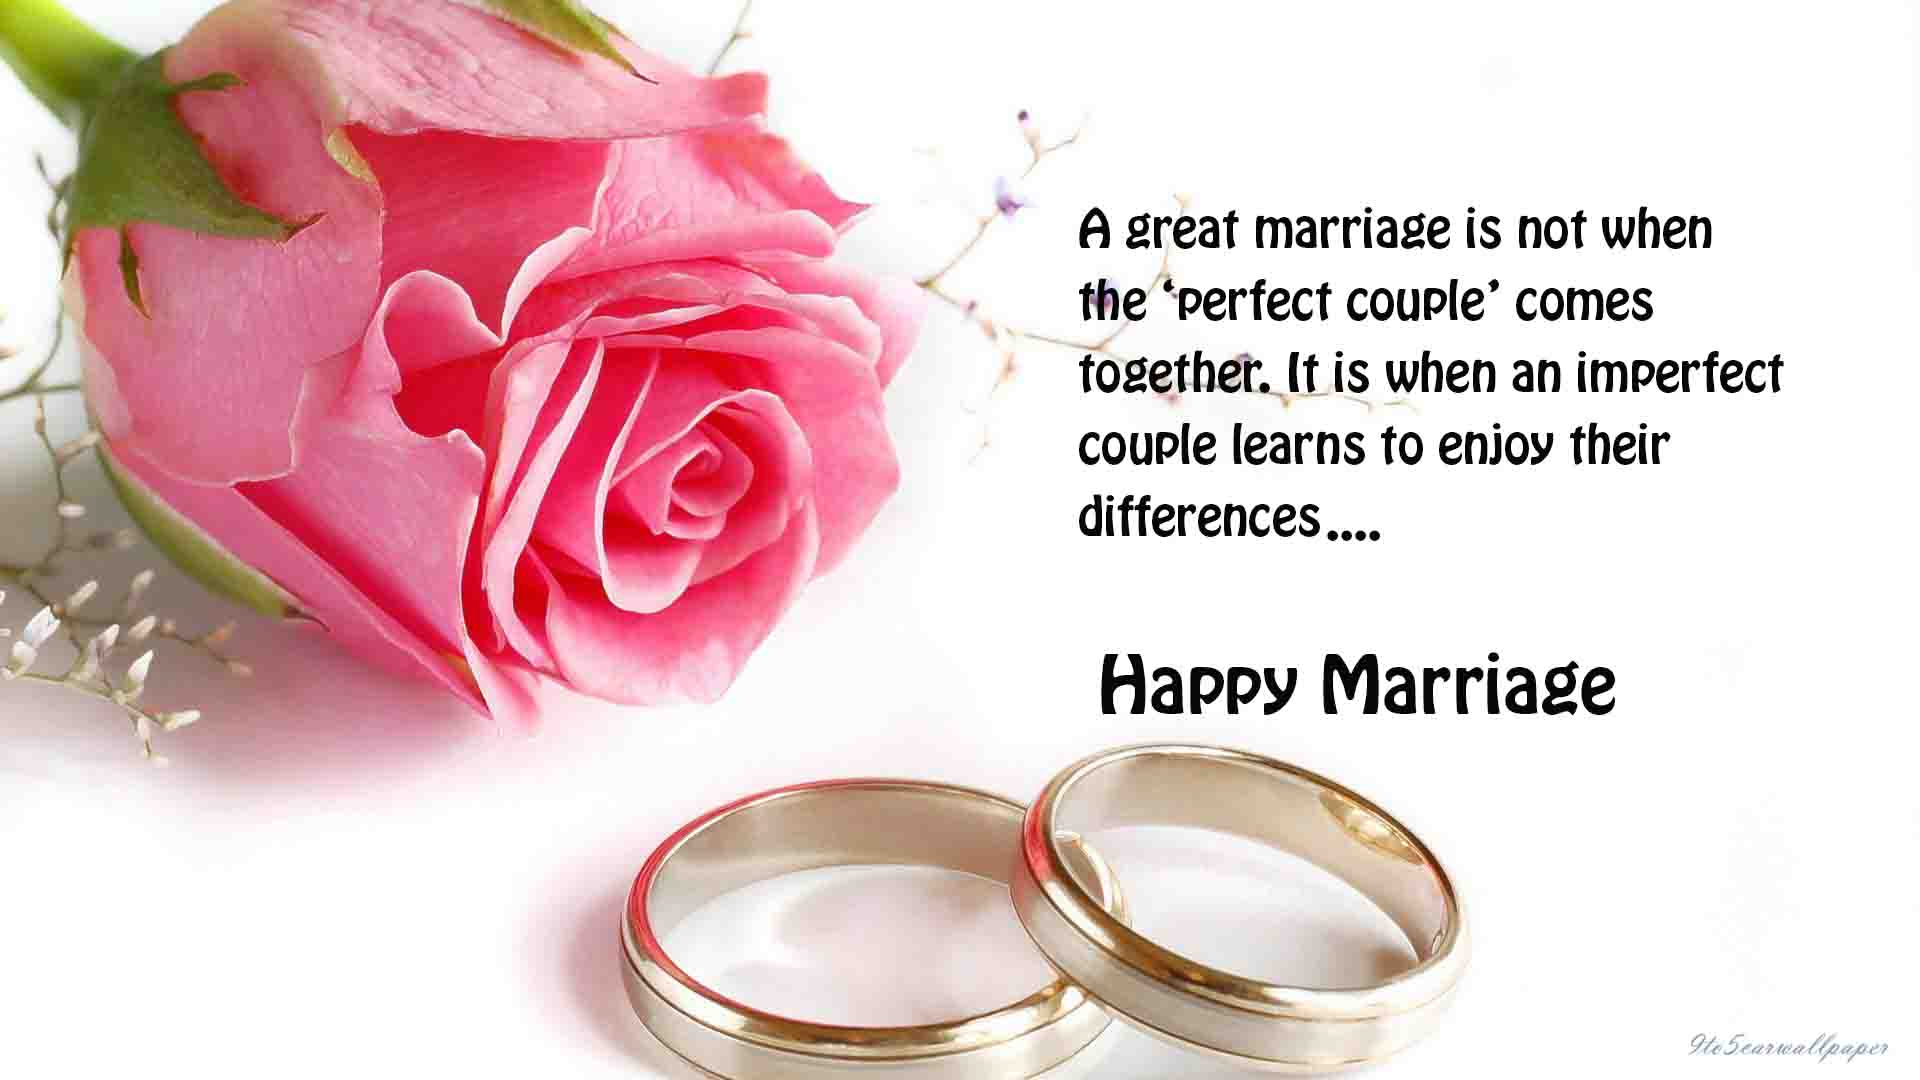 Extremely Happy Home Secret (Tonic) For Everyday Marriage